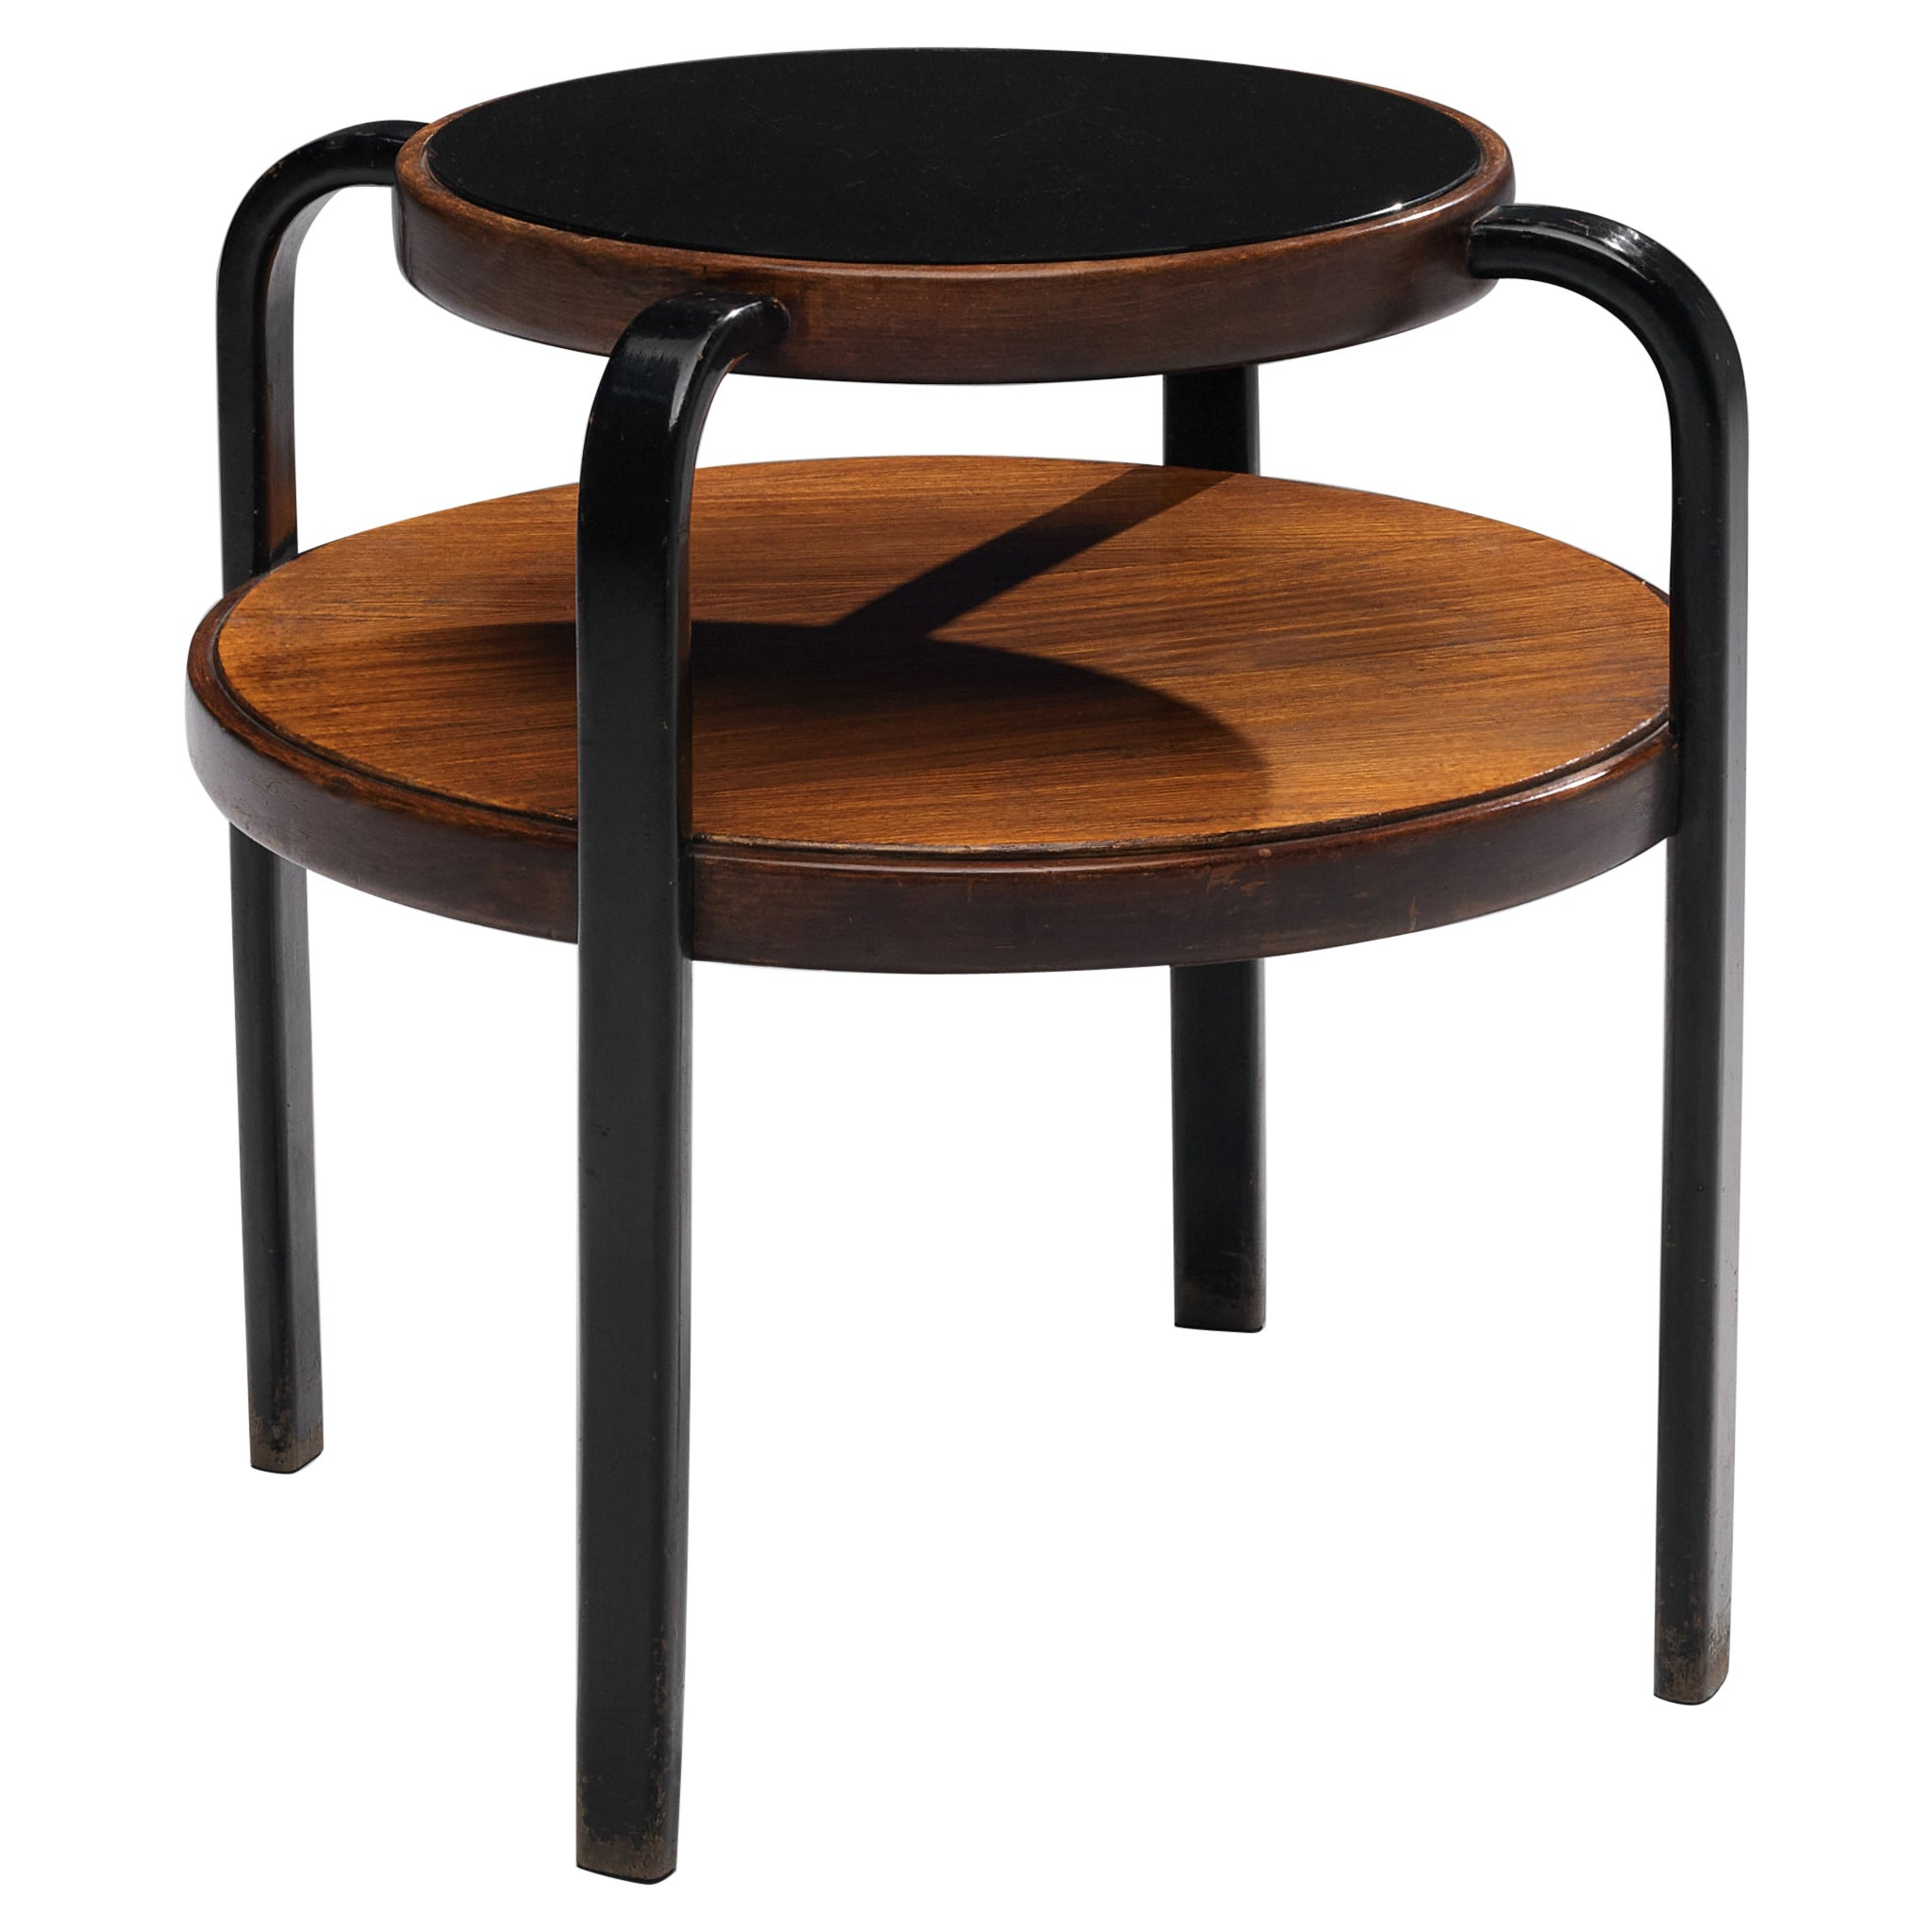 Italian Coffee Table with Two Round Trays